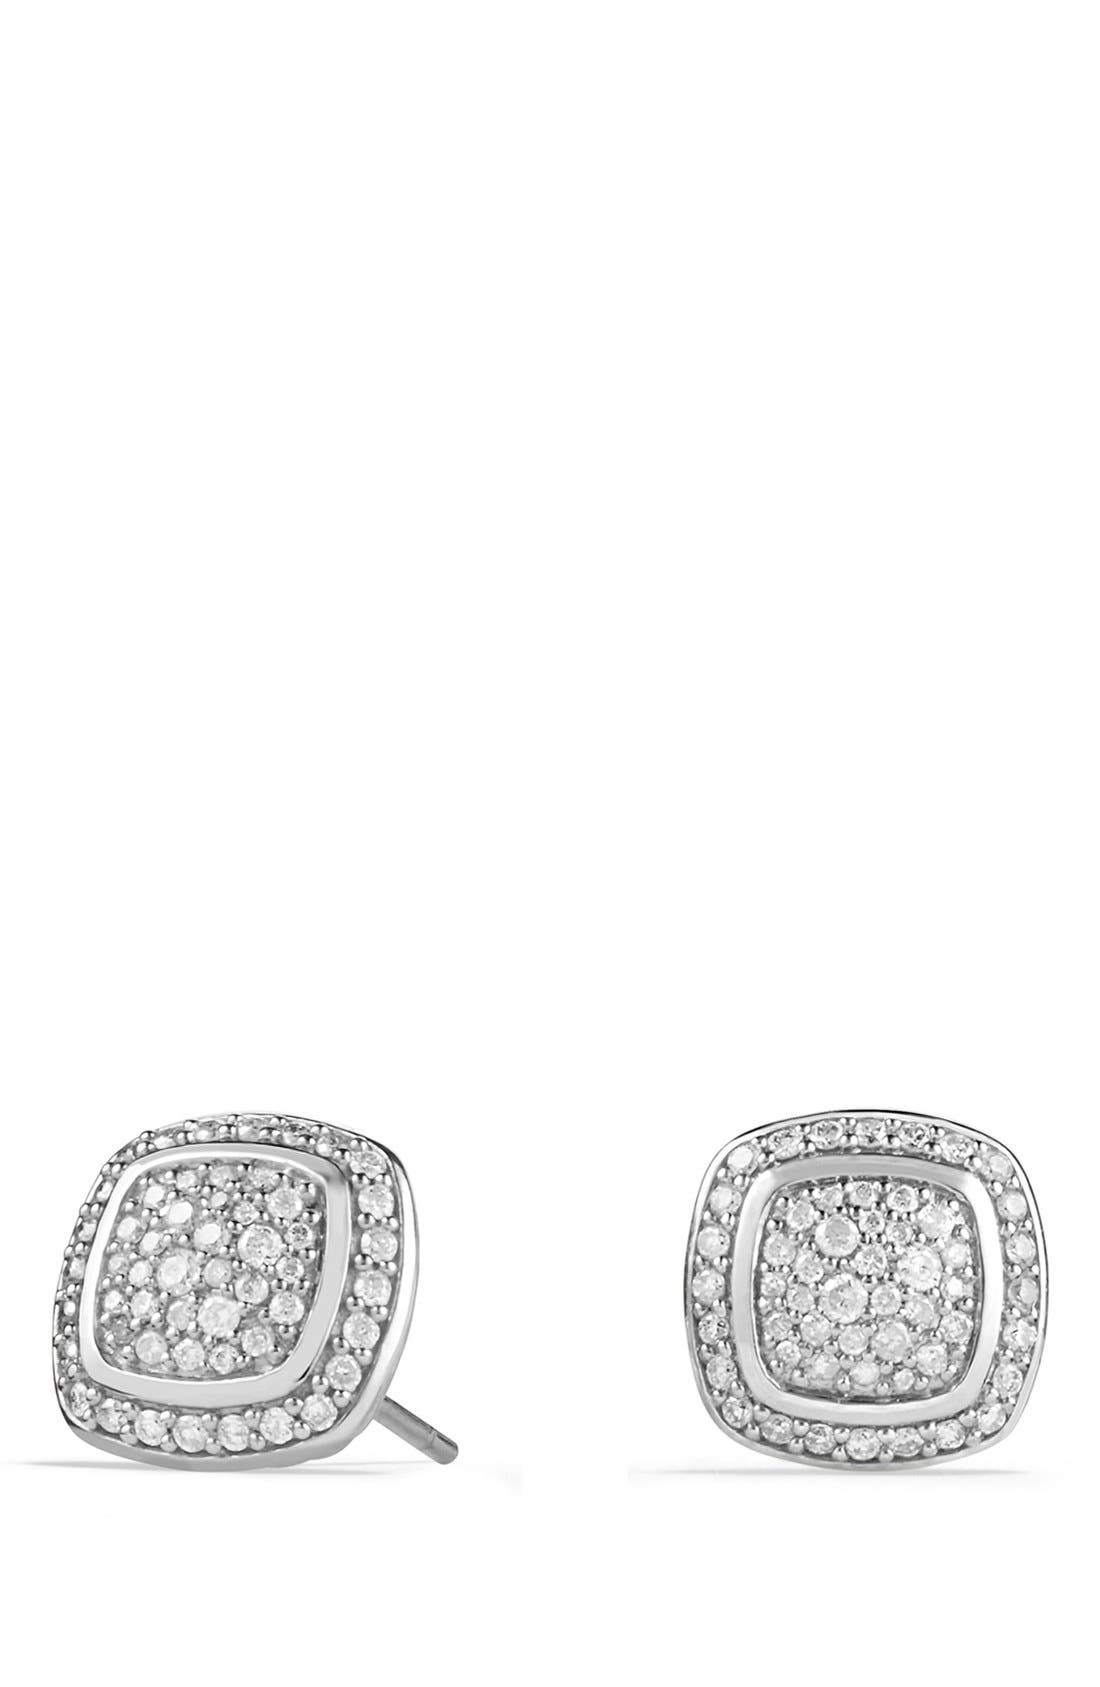 Alternate Image 1 Selected - David Yurman 'Albion' Earrings with Diamonds